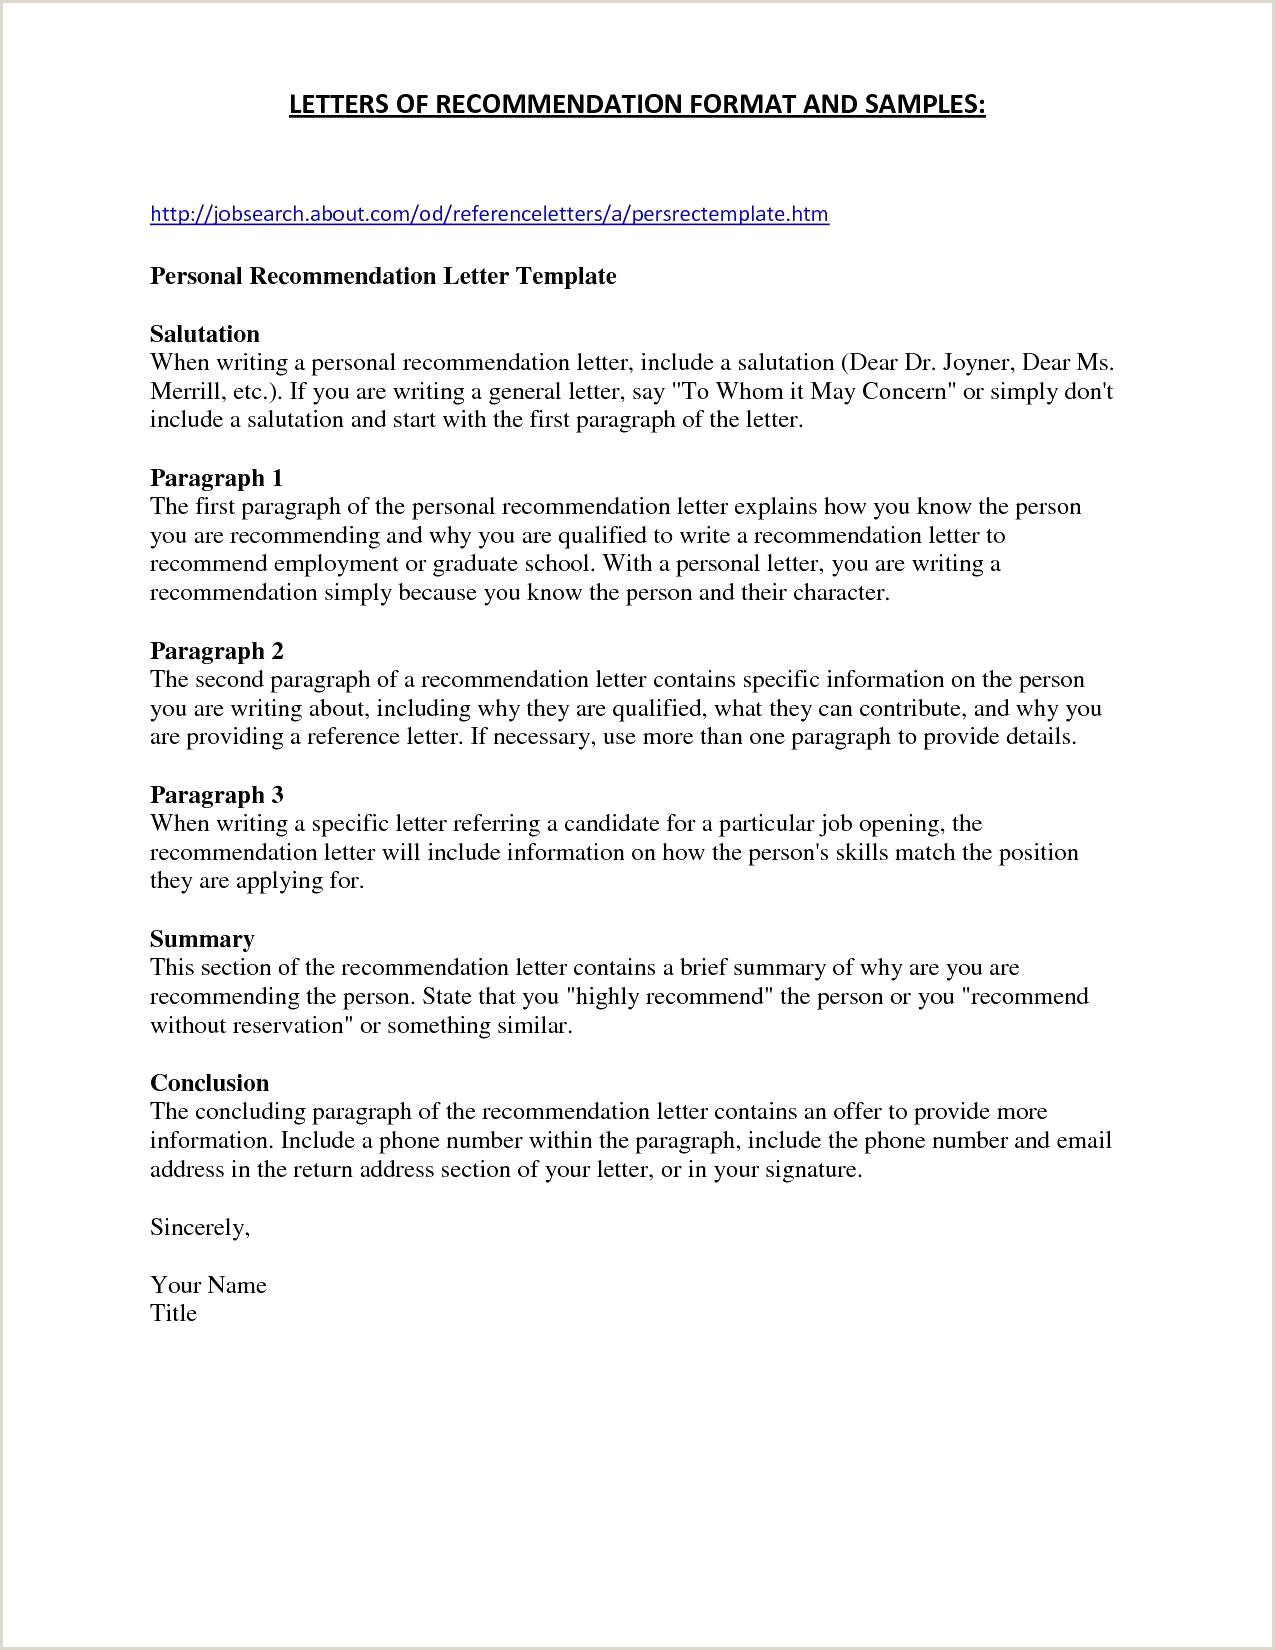 Letter to Judge format Magistrate Cover Letter Inspirational Letter Re Mendation to